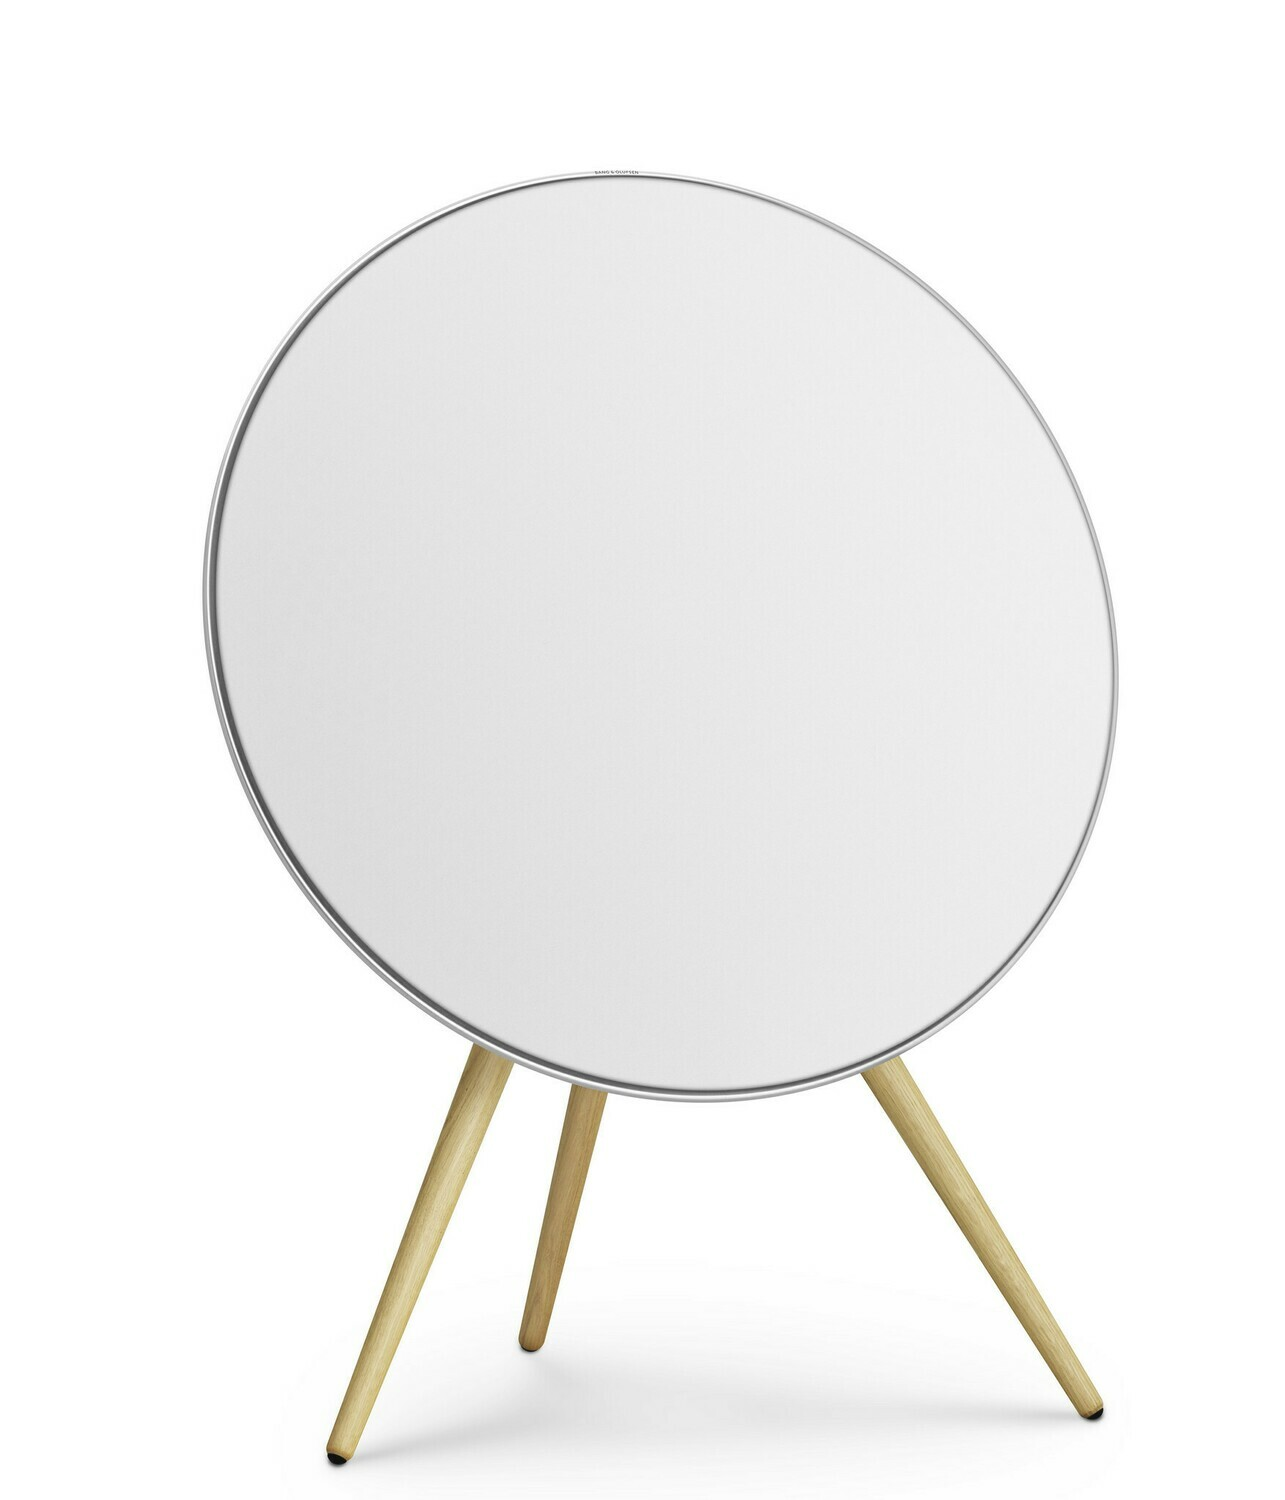 Beoplay A9 4th Generation mit Google Assistant, Weiss